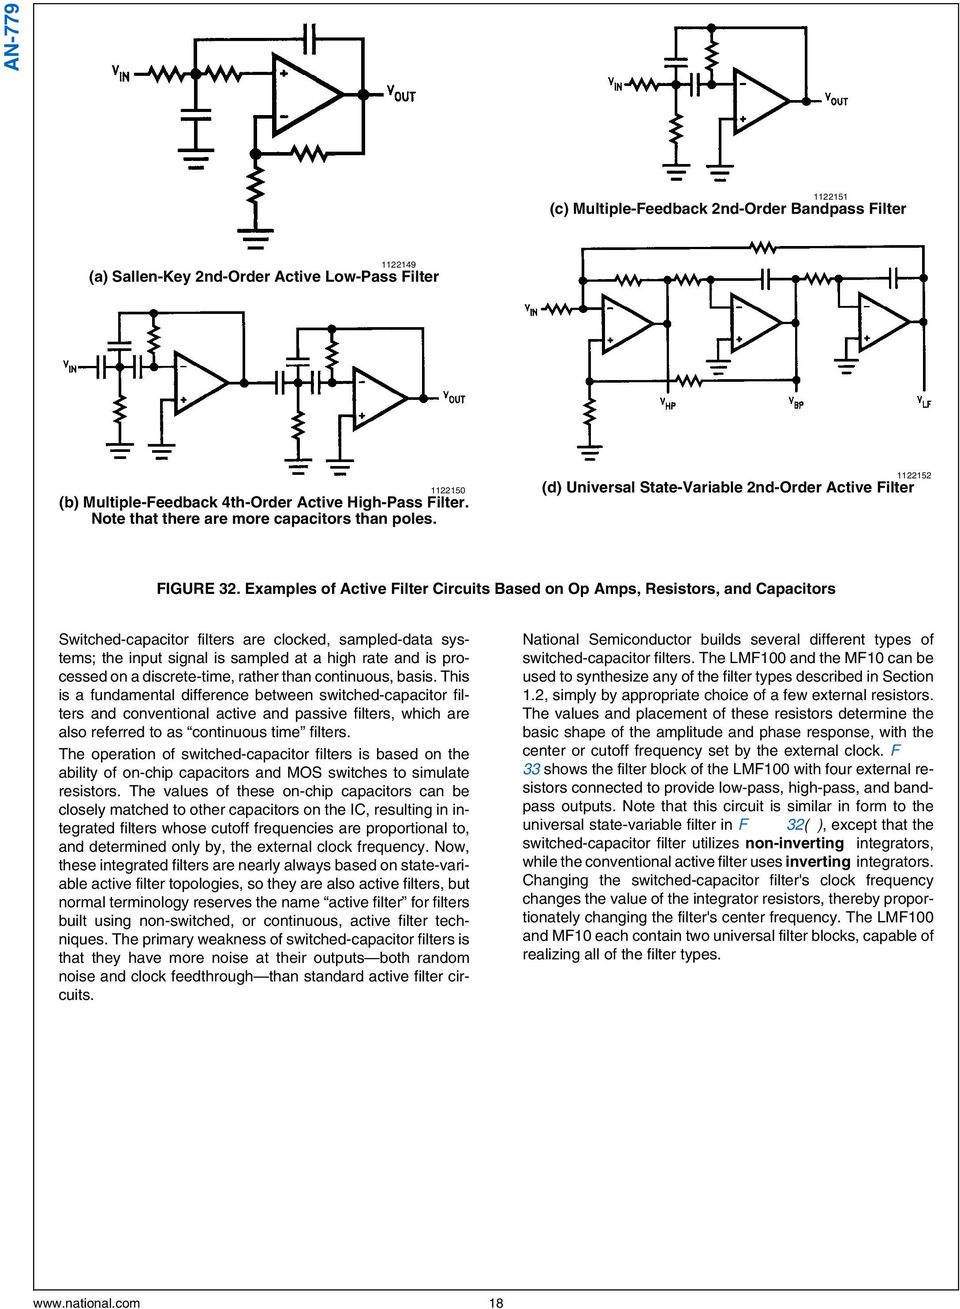 Notchfilter Filtercircuit Basiccircuit Circuit Diagram Lm833lmf100mf10 Application Note 779 A Basic Introduction To Examples Of Active Filter Circuits Based On Op Amps Resistors And Capacitors Switched